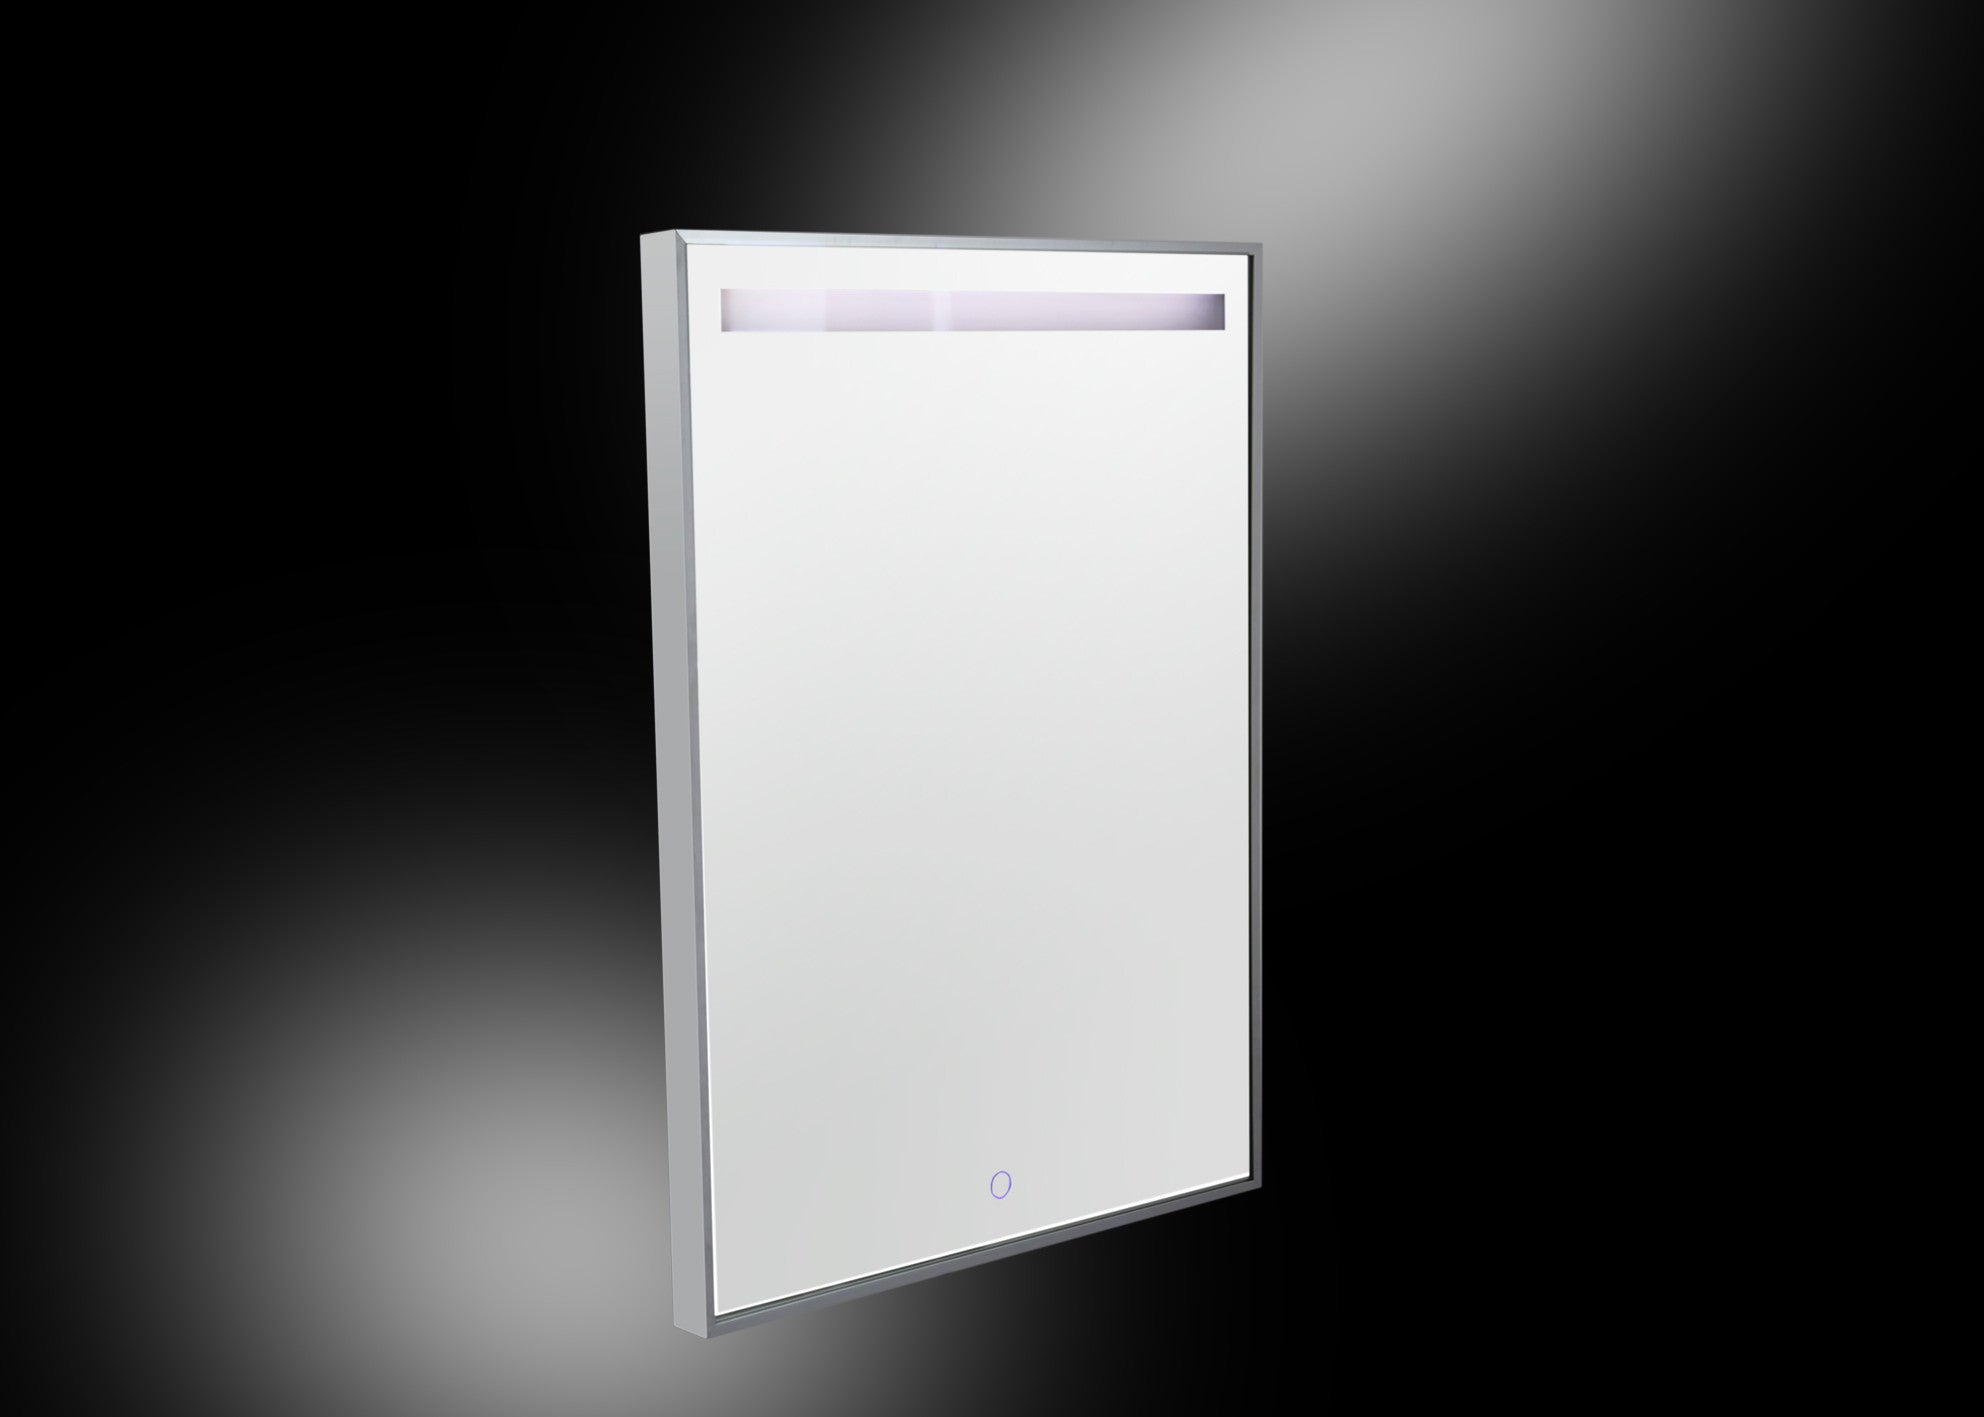 39 miracle 39 led mirror 60 x 80 cm for Mirror 60 x 80